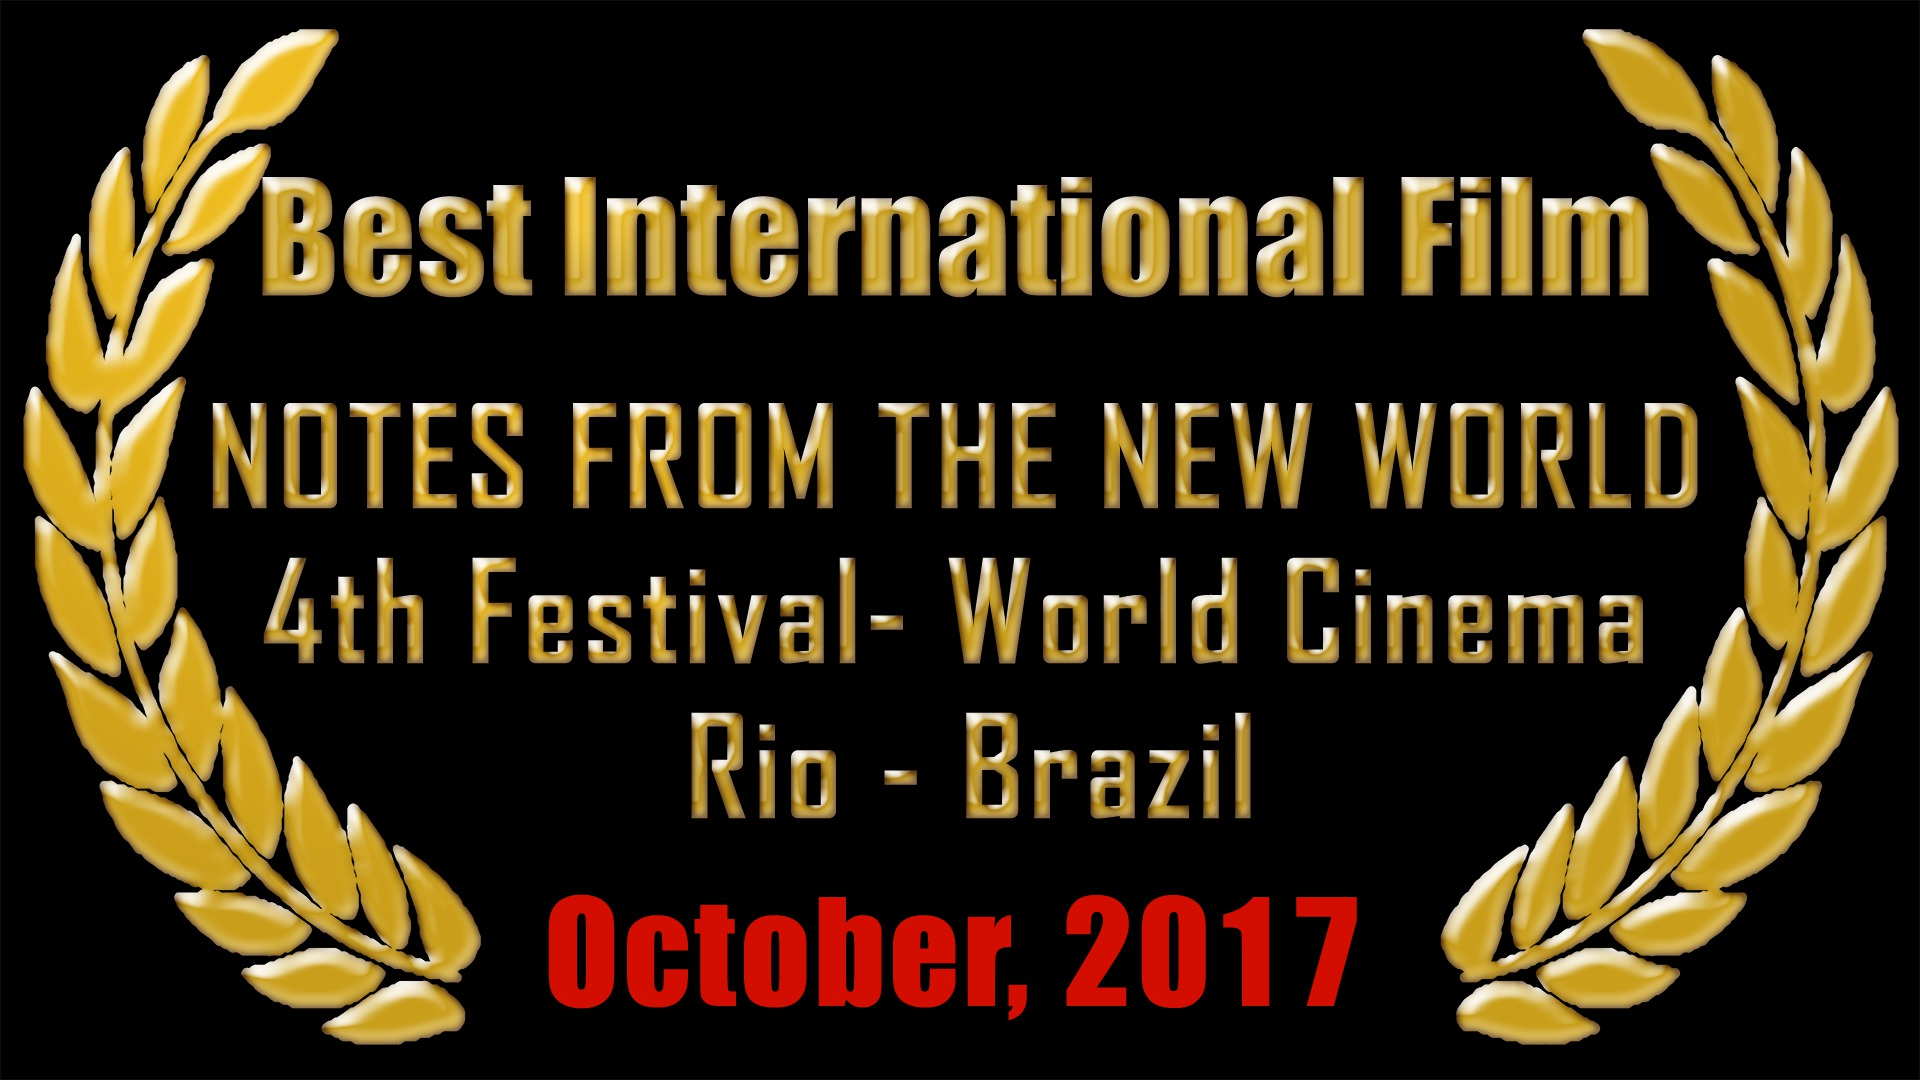 Best International Film - 4th Brazilian International Film Festival 2017